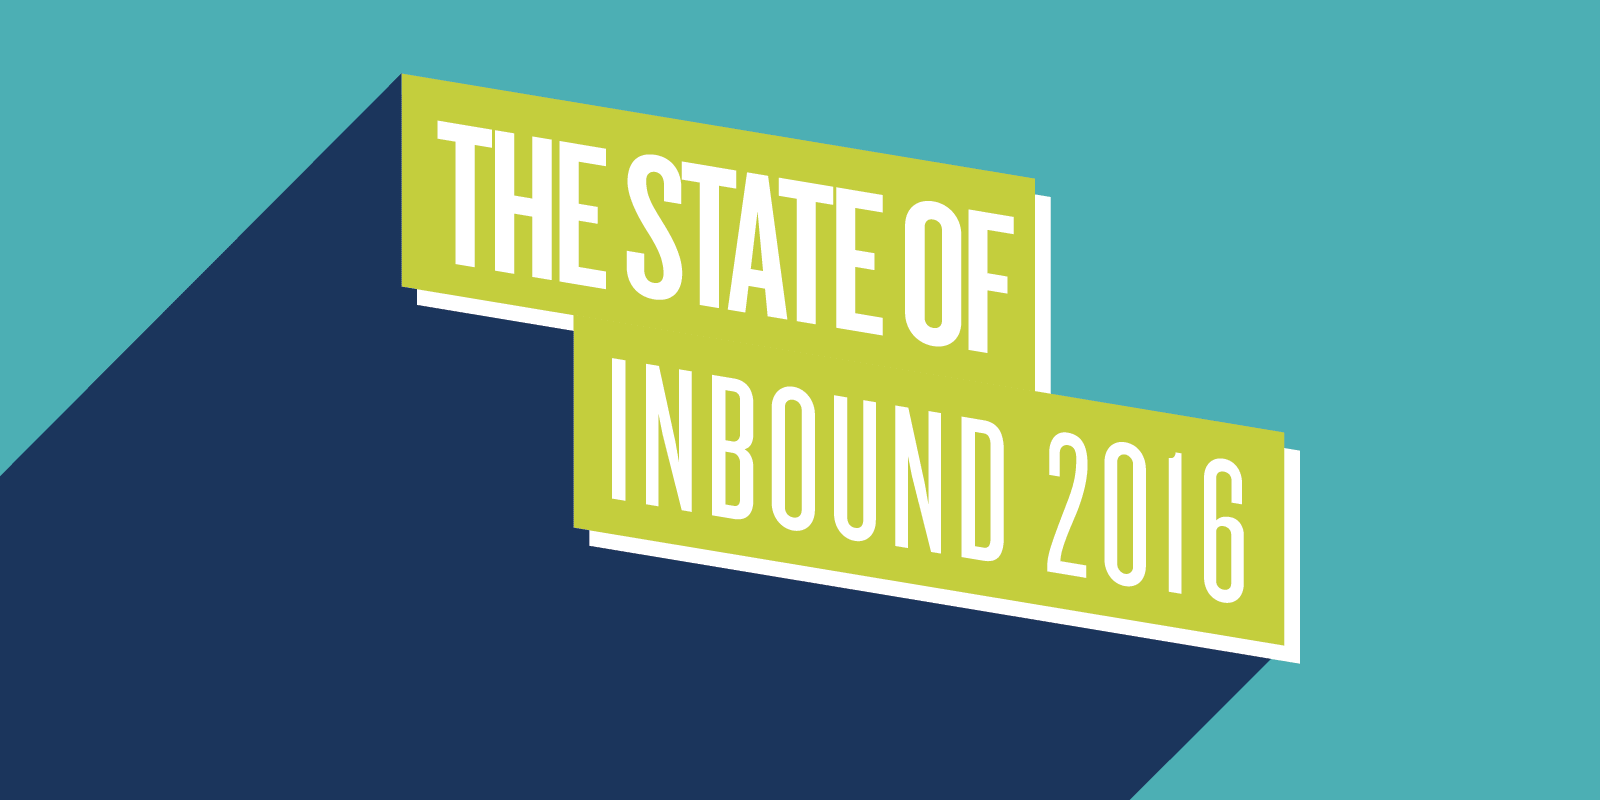 There's a Social Evolution Happening in LATAM According to HubSpot's State of Inbound 2016 Report